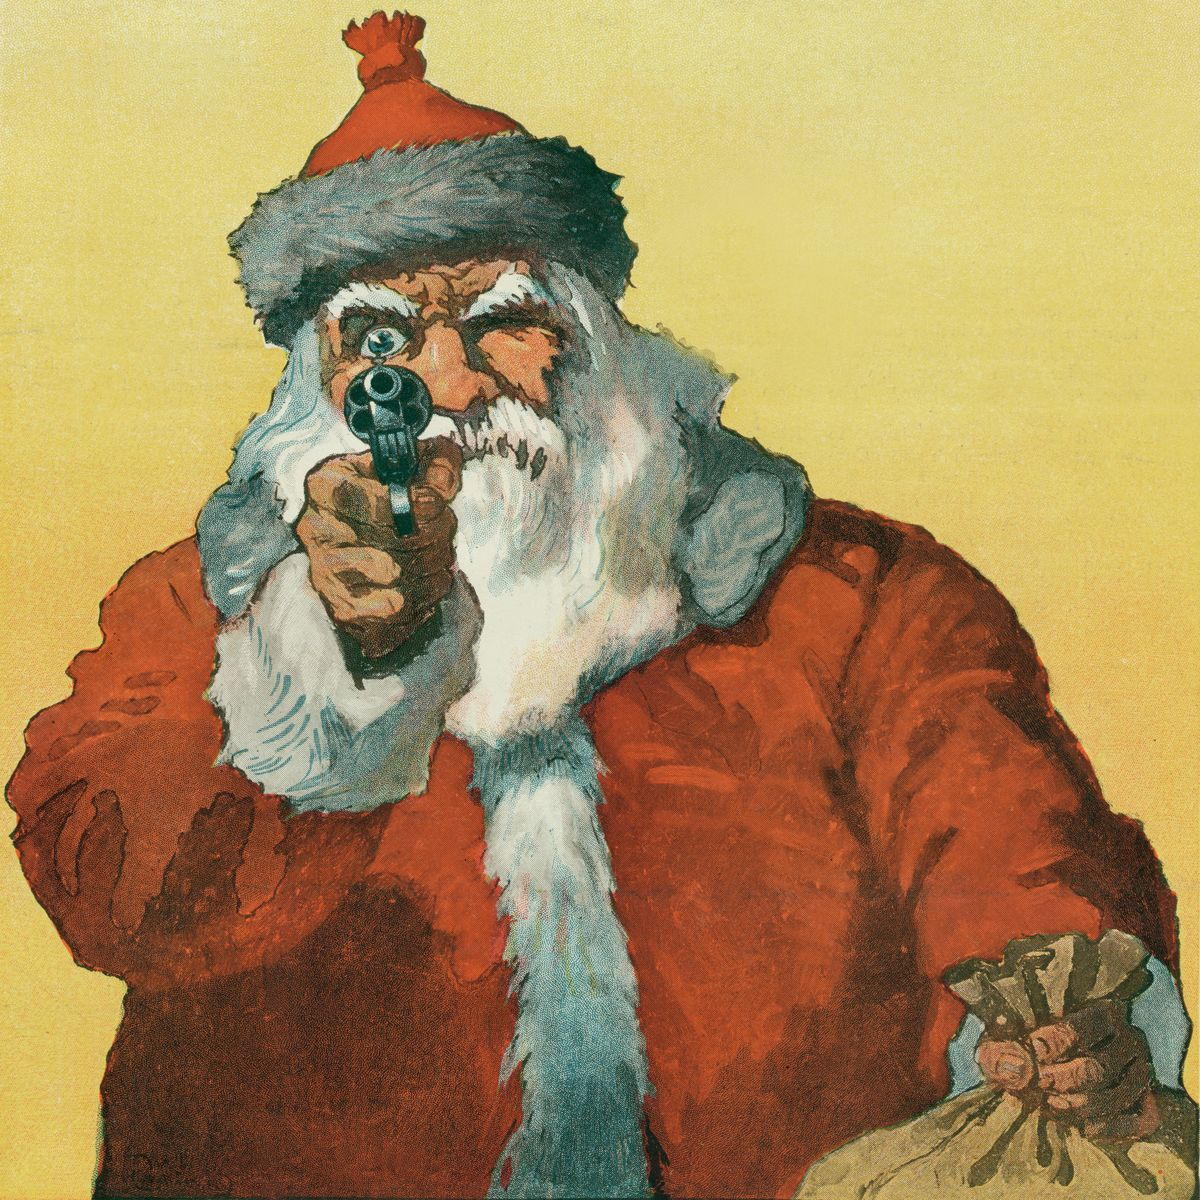 Santa Claus With a Handgun